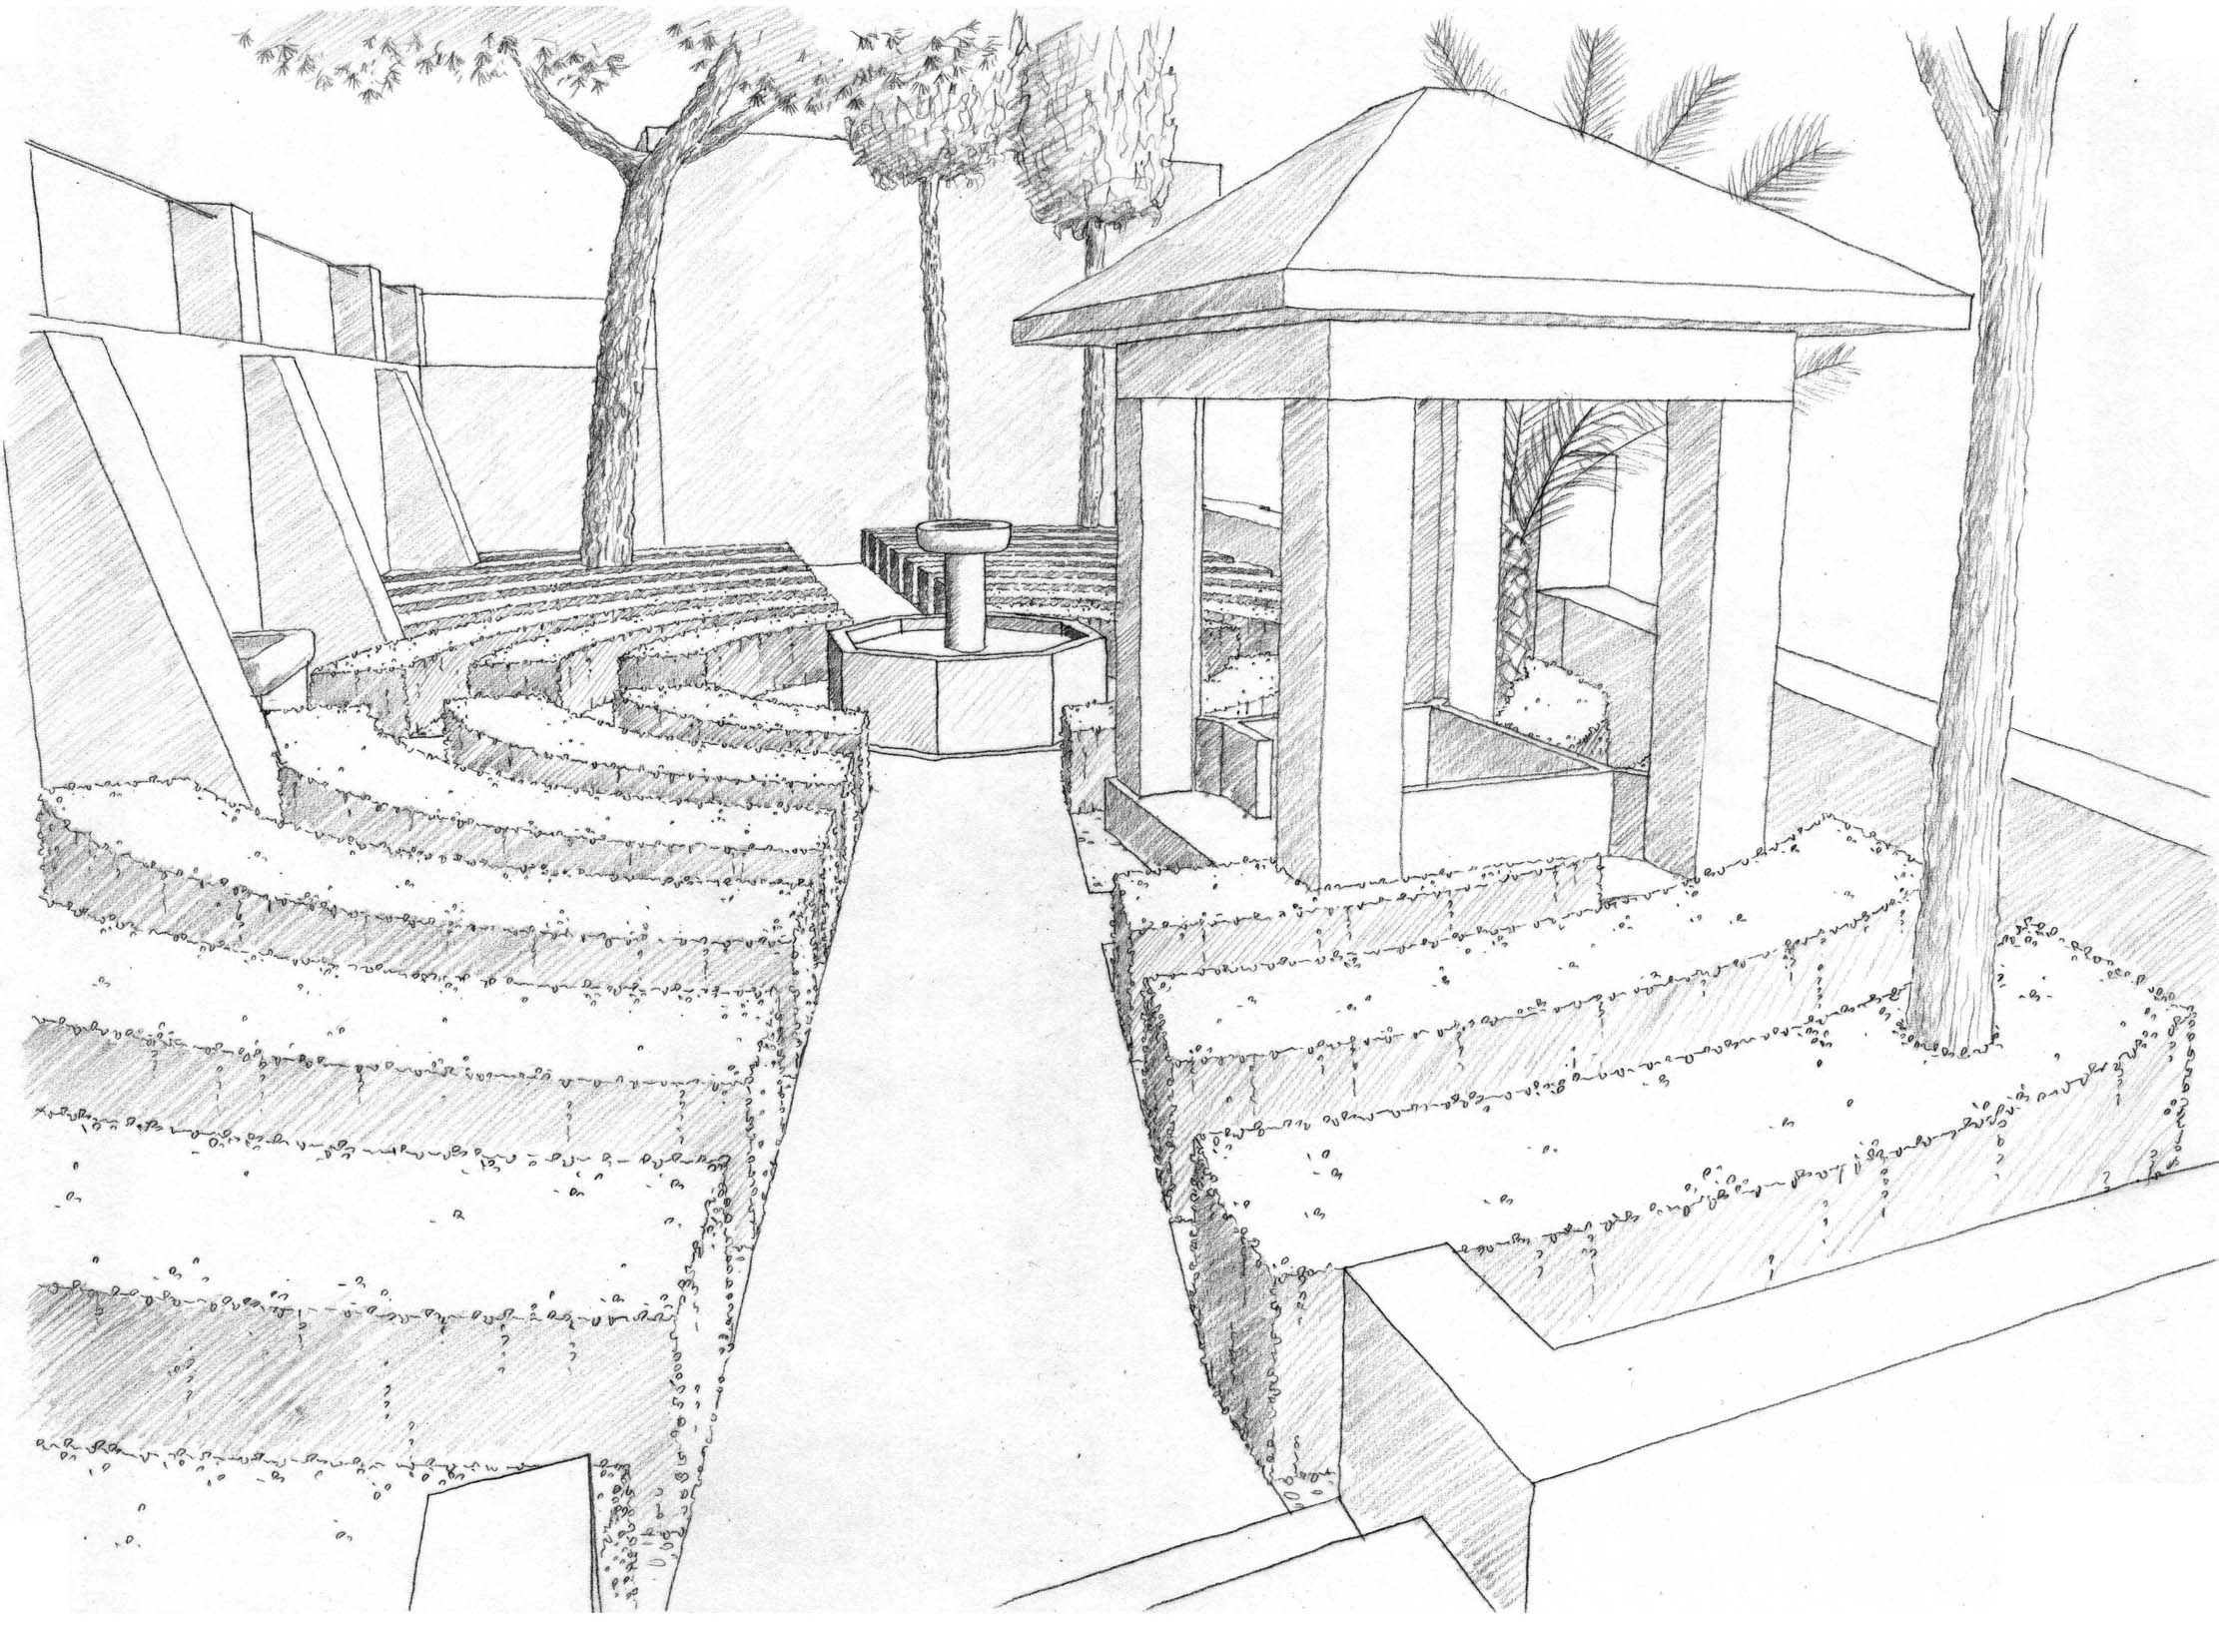 landscape design drawing at getdrawings com